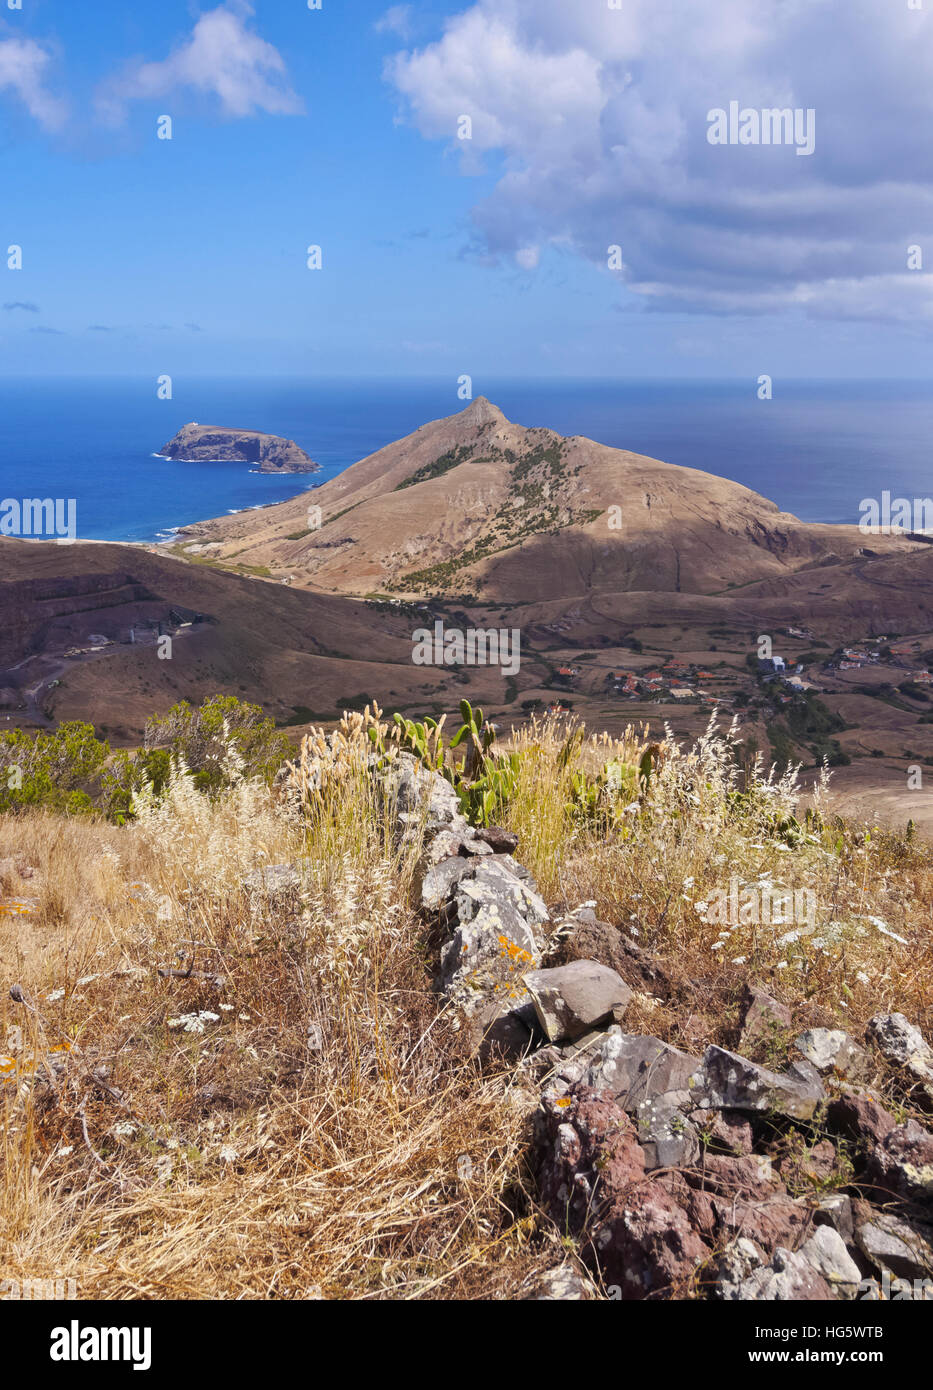 Portugal, Madeira Islands, Landscape of the Porto Santo Island. - Stock Image